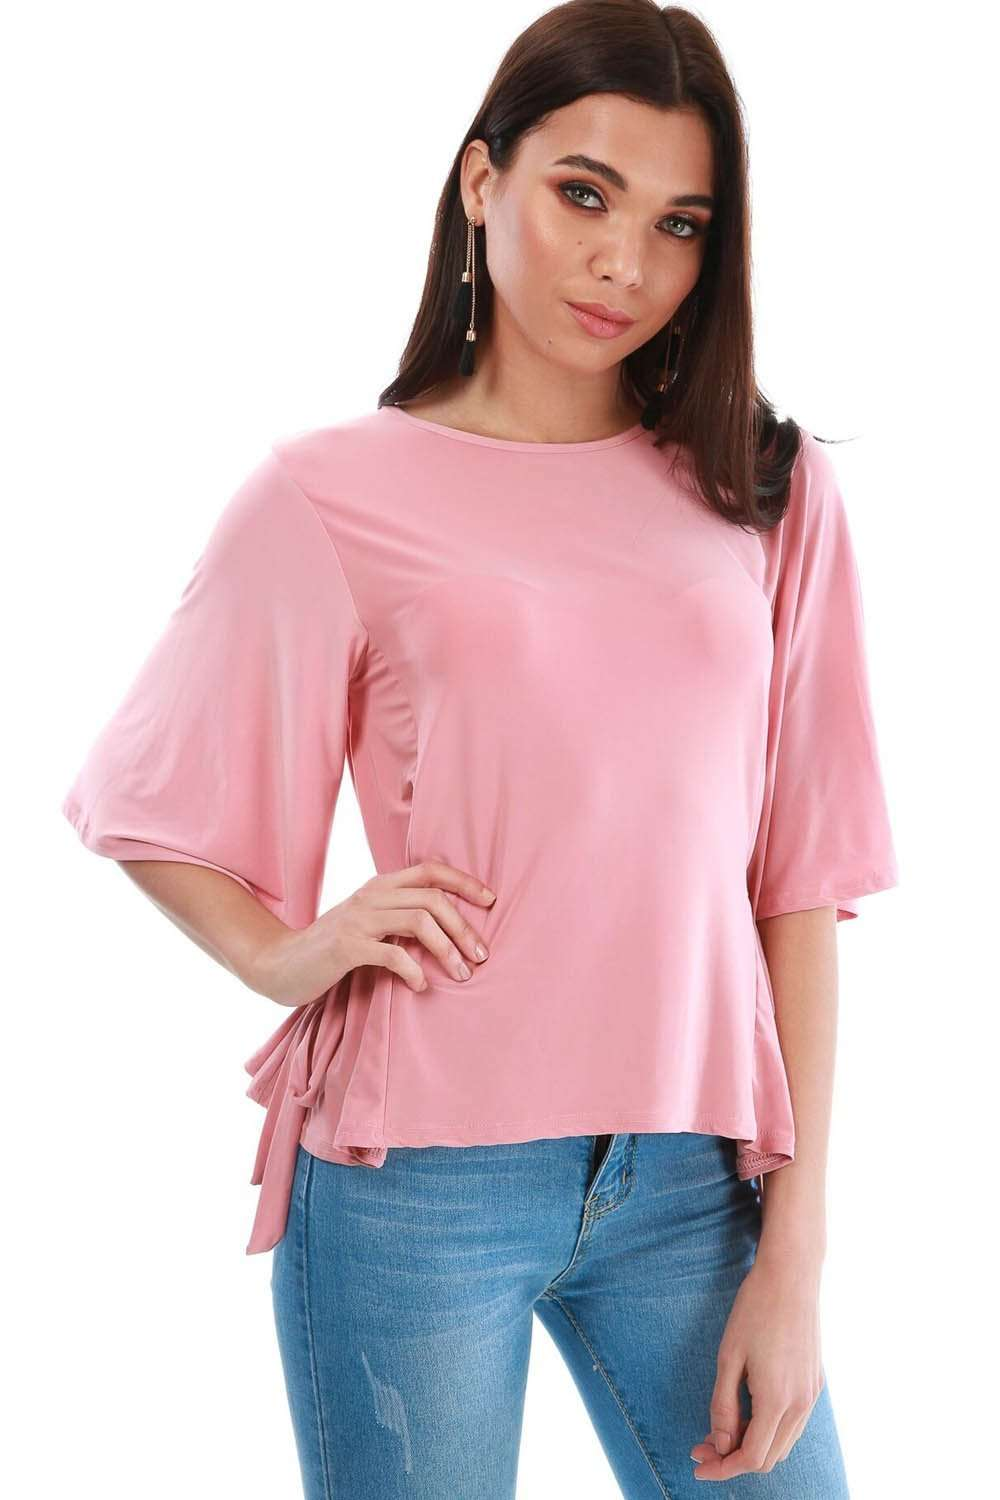 Hallee Pink Tie Side Slinky Bat Wing Top - bejealous-com